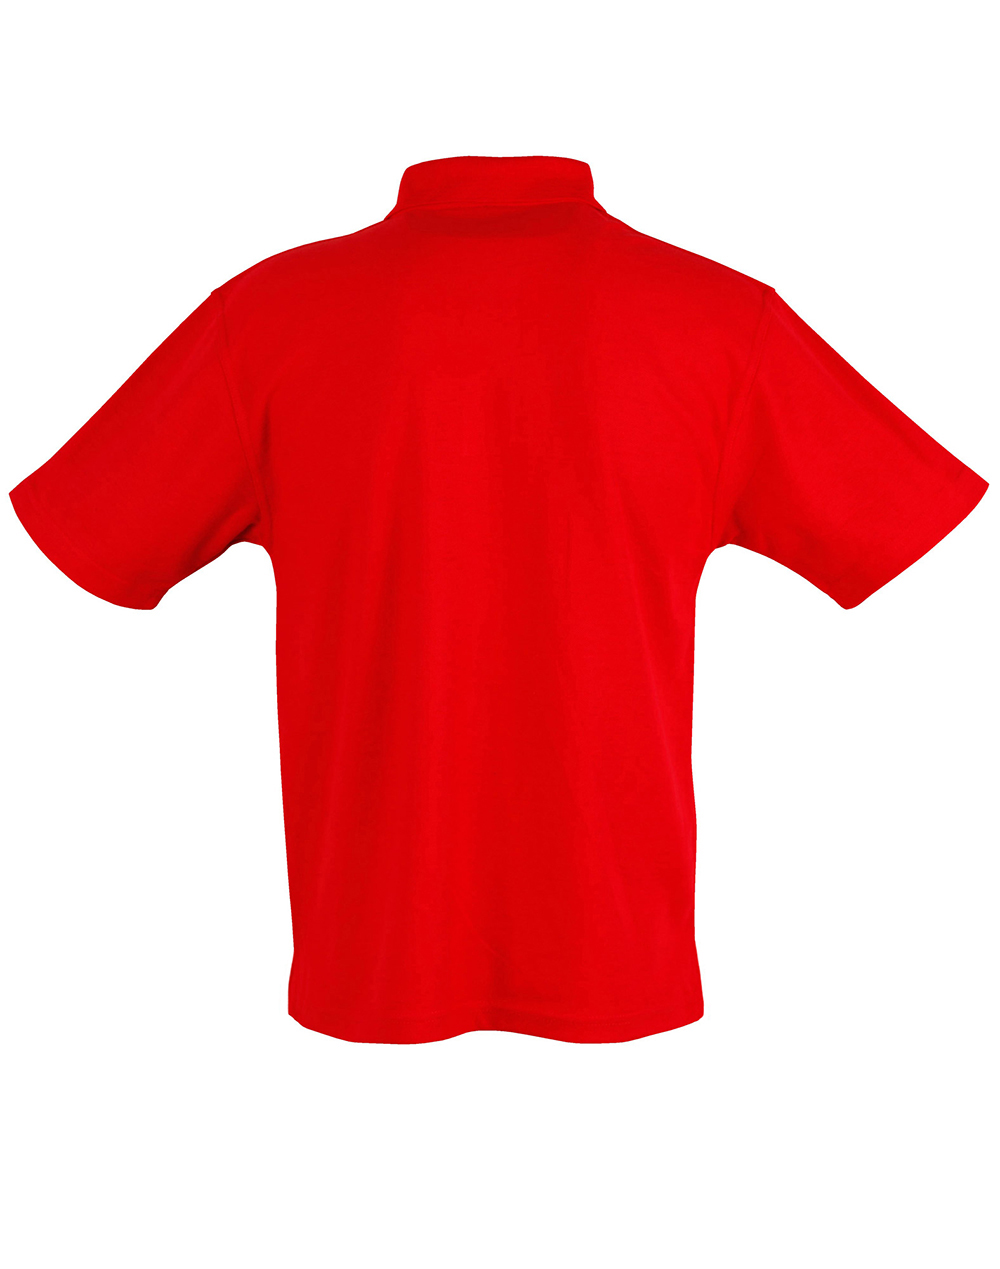 https://s3-ap-southeast-1.amazonaws.com/ws-imgs/POLOSHIRTS/PS11K_Red_Back_l.jpg